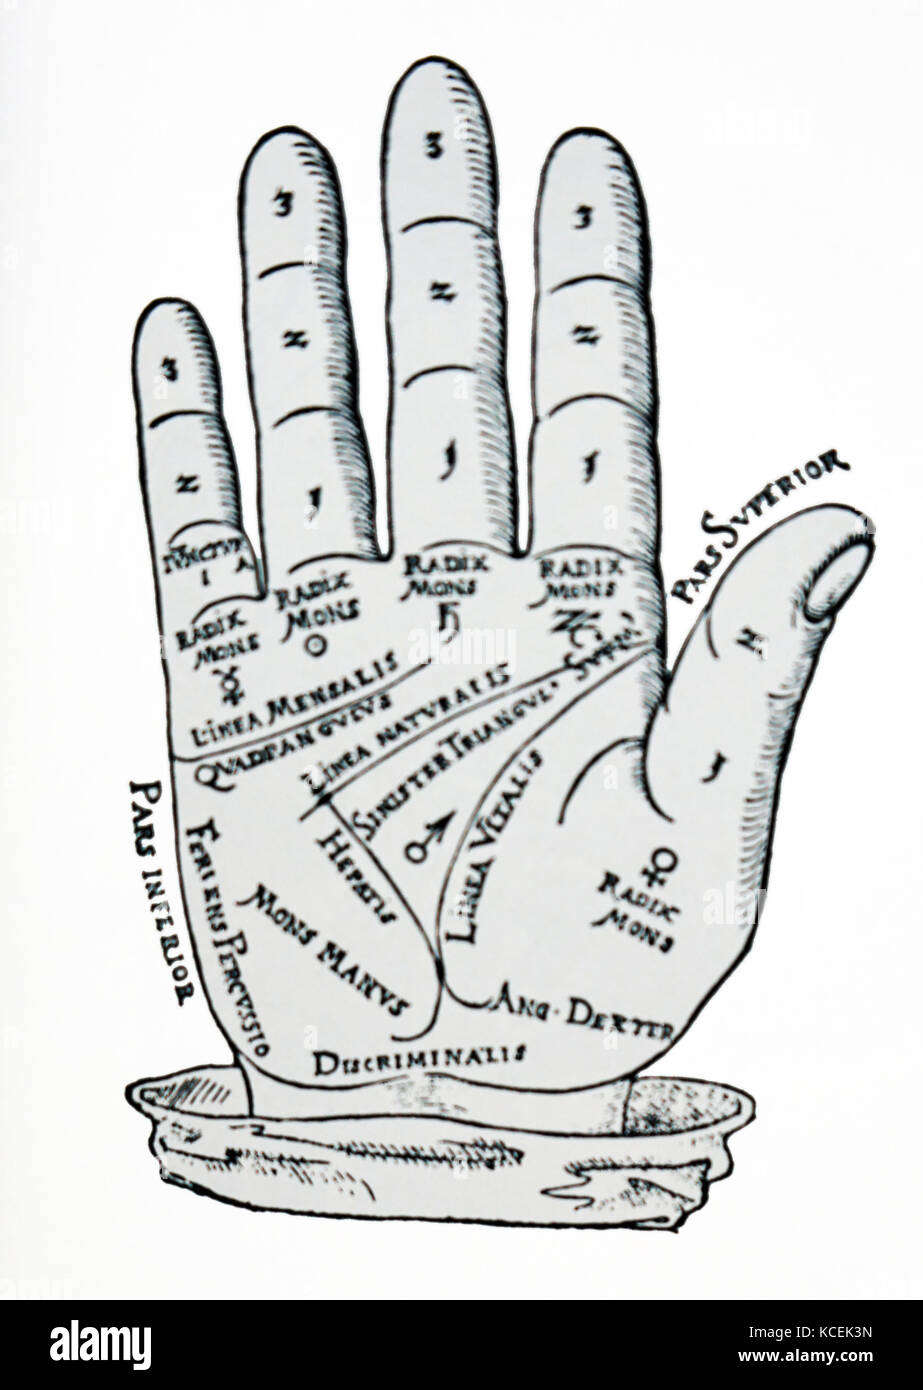 medium resolution of a palmistry chart used in the foretelling of the future through the study of the palm